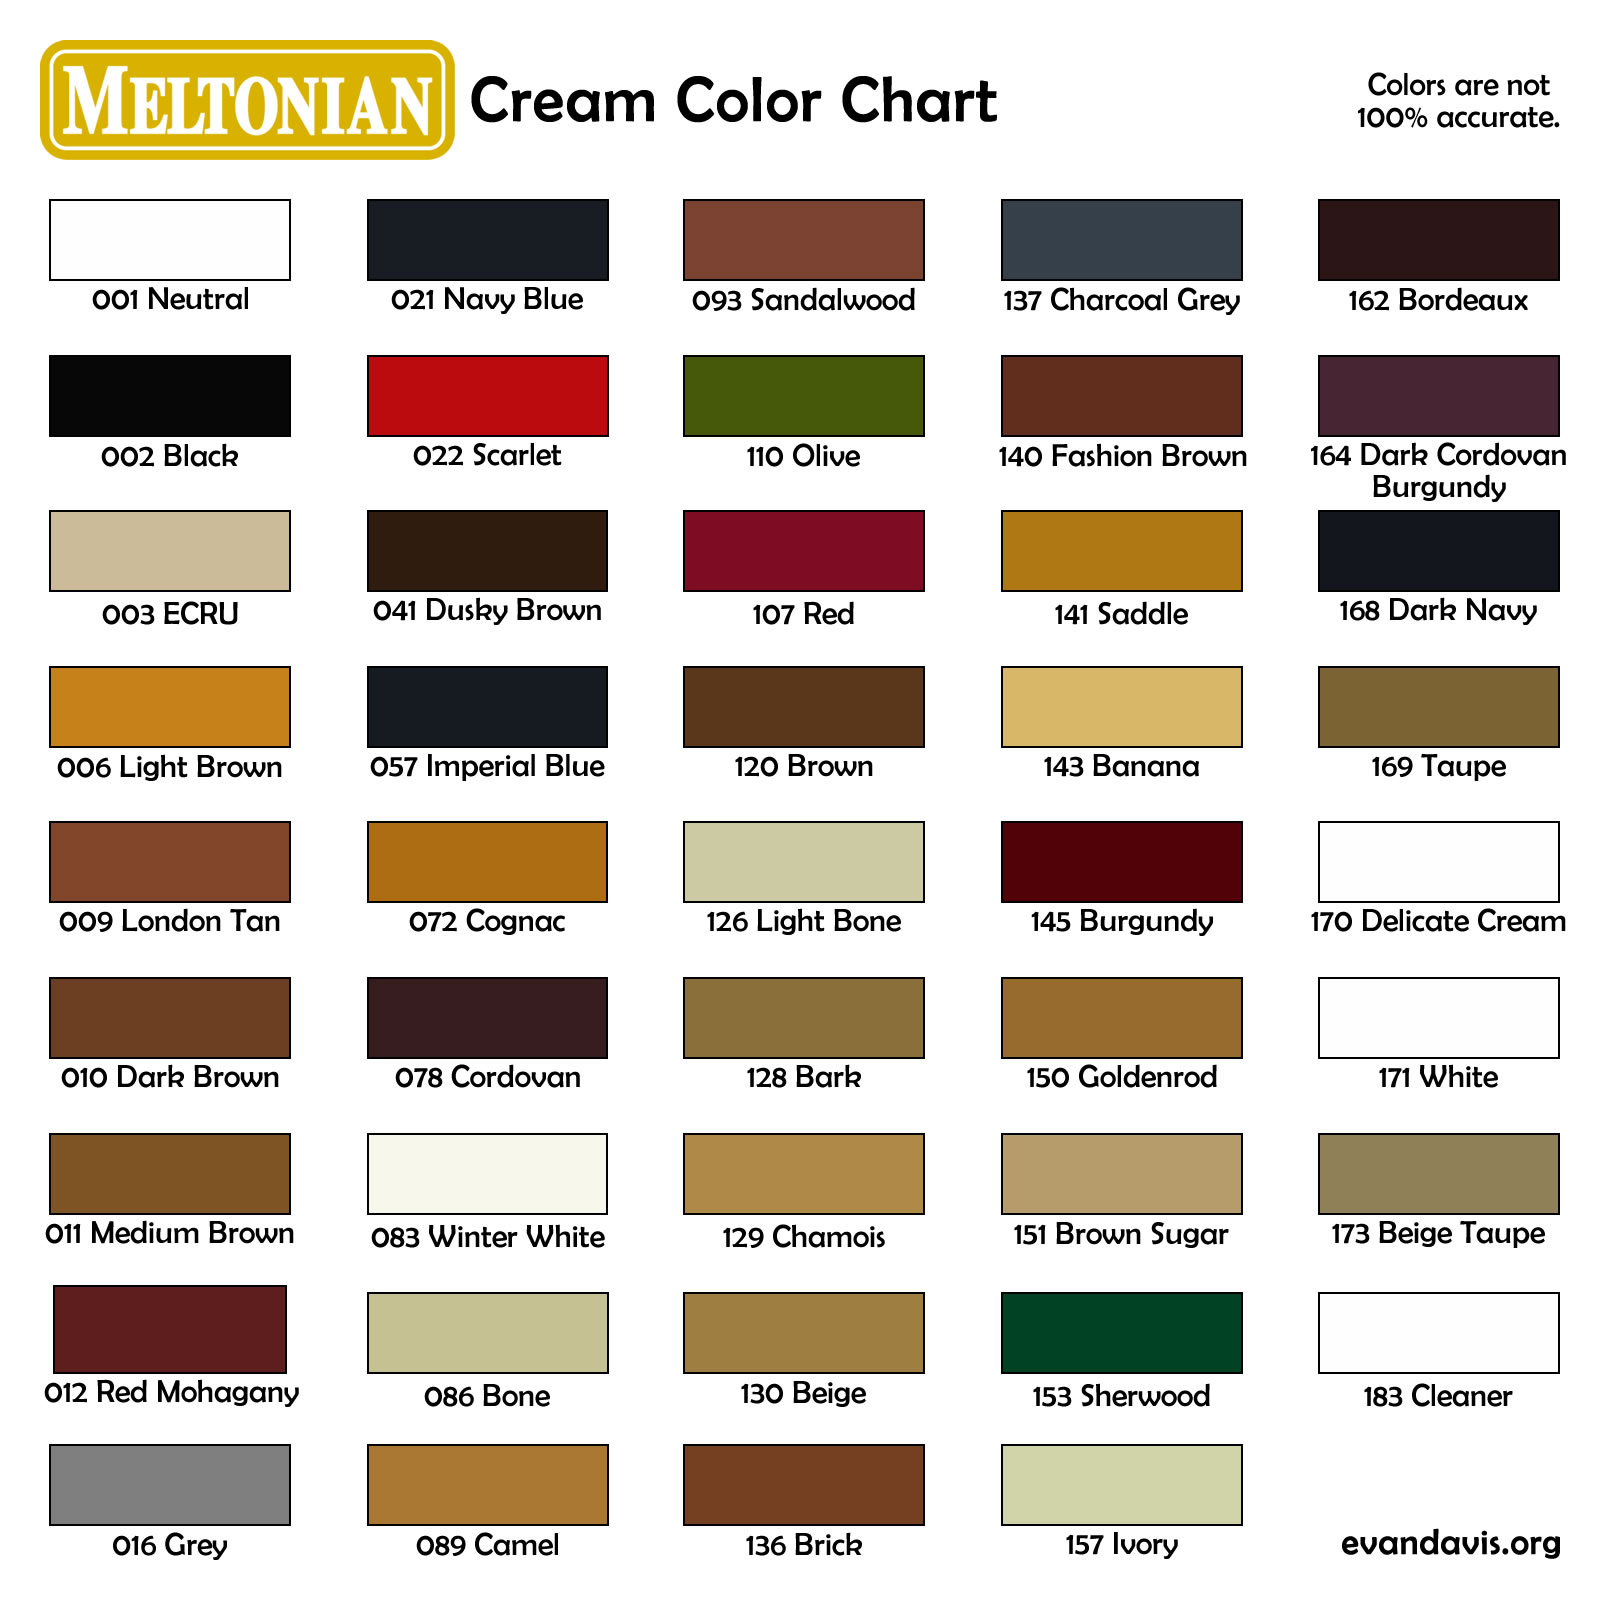 Cream color chart gallery free any chart examples cream color chart images free any chart examples cream color chart images free any chart examples nvjuhfo Images